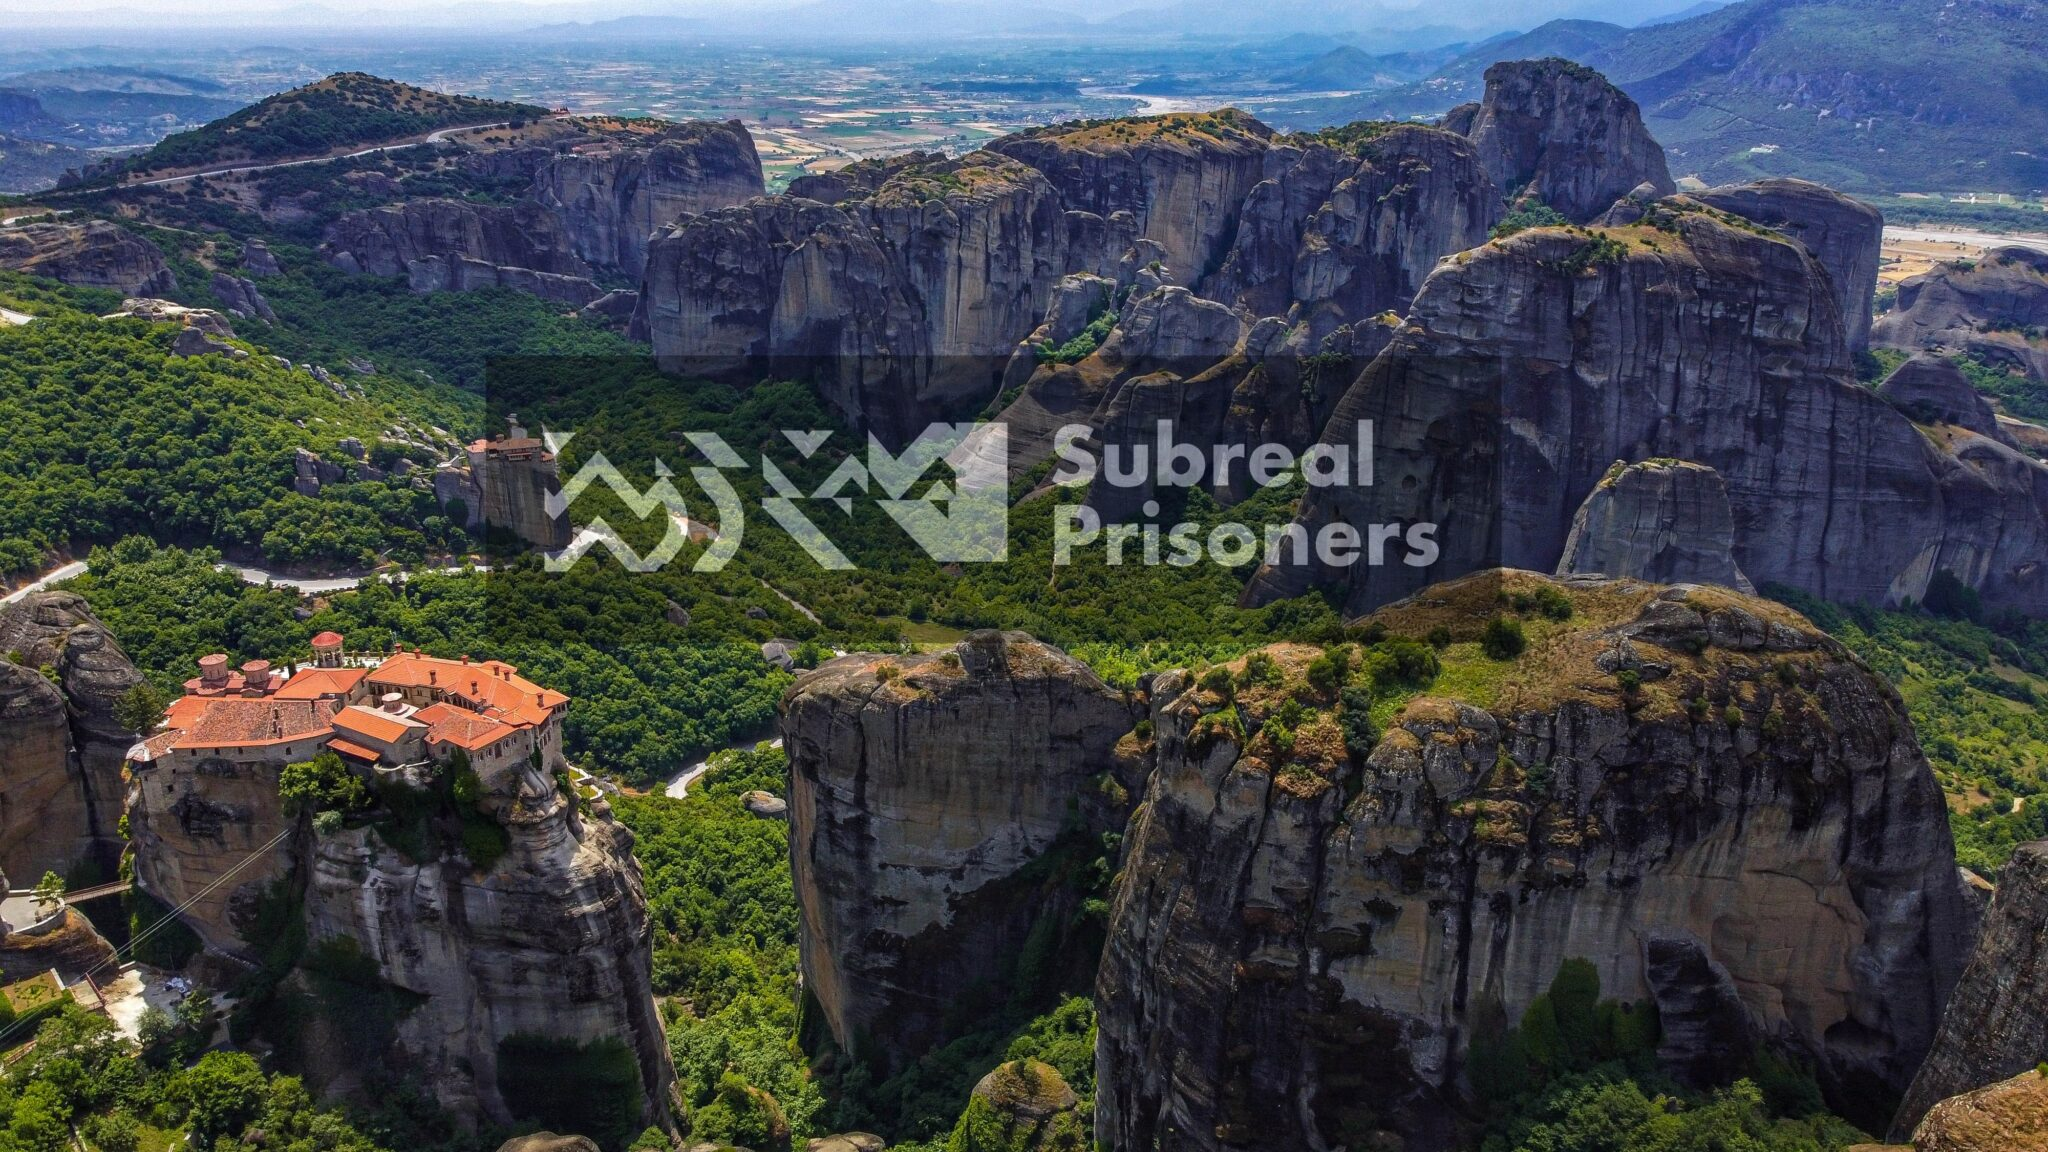 Subreal Prisoners